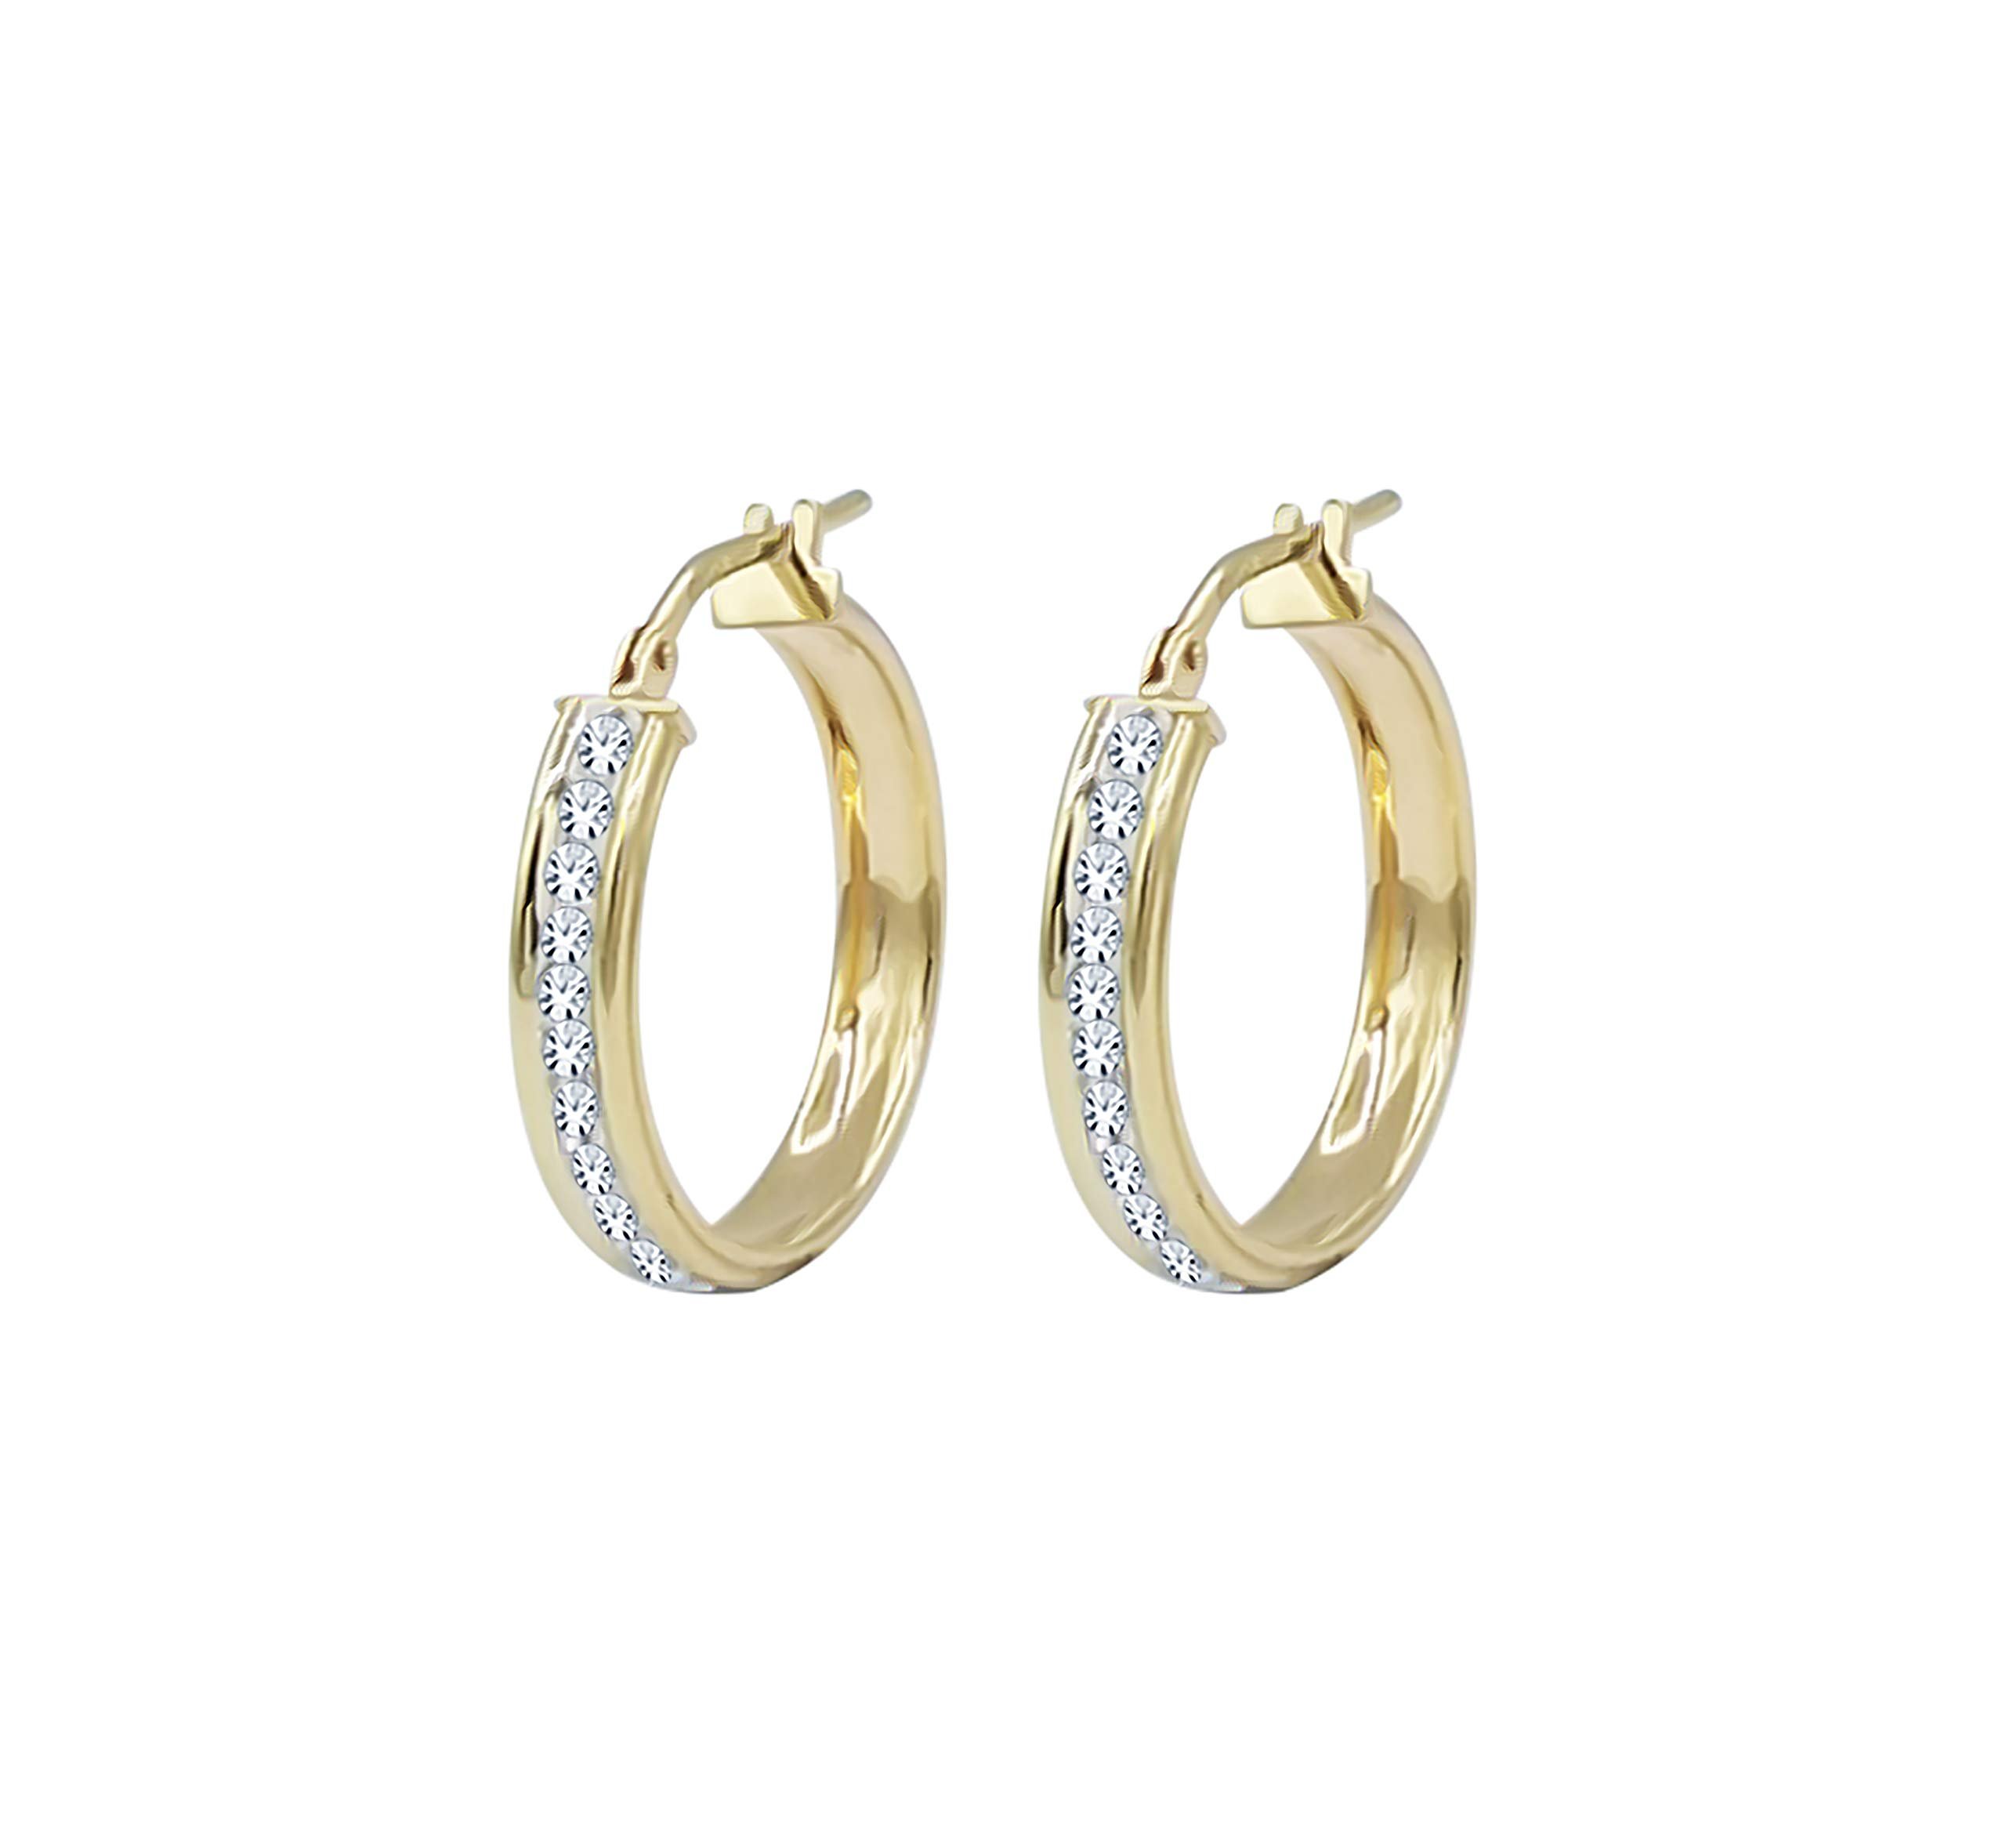 Amata Fine Jewelry 18K Yellow Gold Plated Sterling Silver Hoop Earrings for Women- Studded with Swarovski Austrian Crystals (20mm Round Hoop)